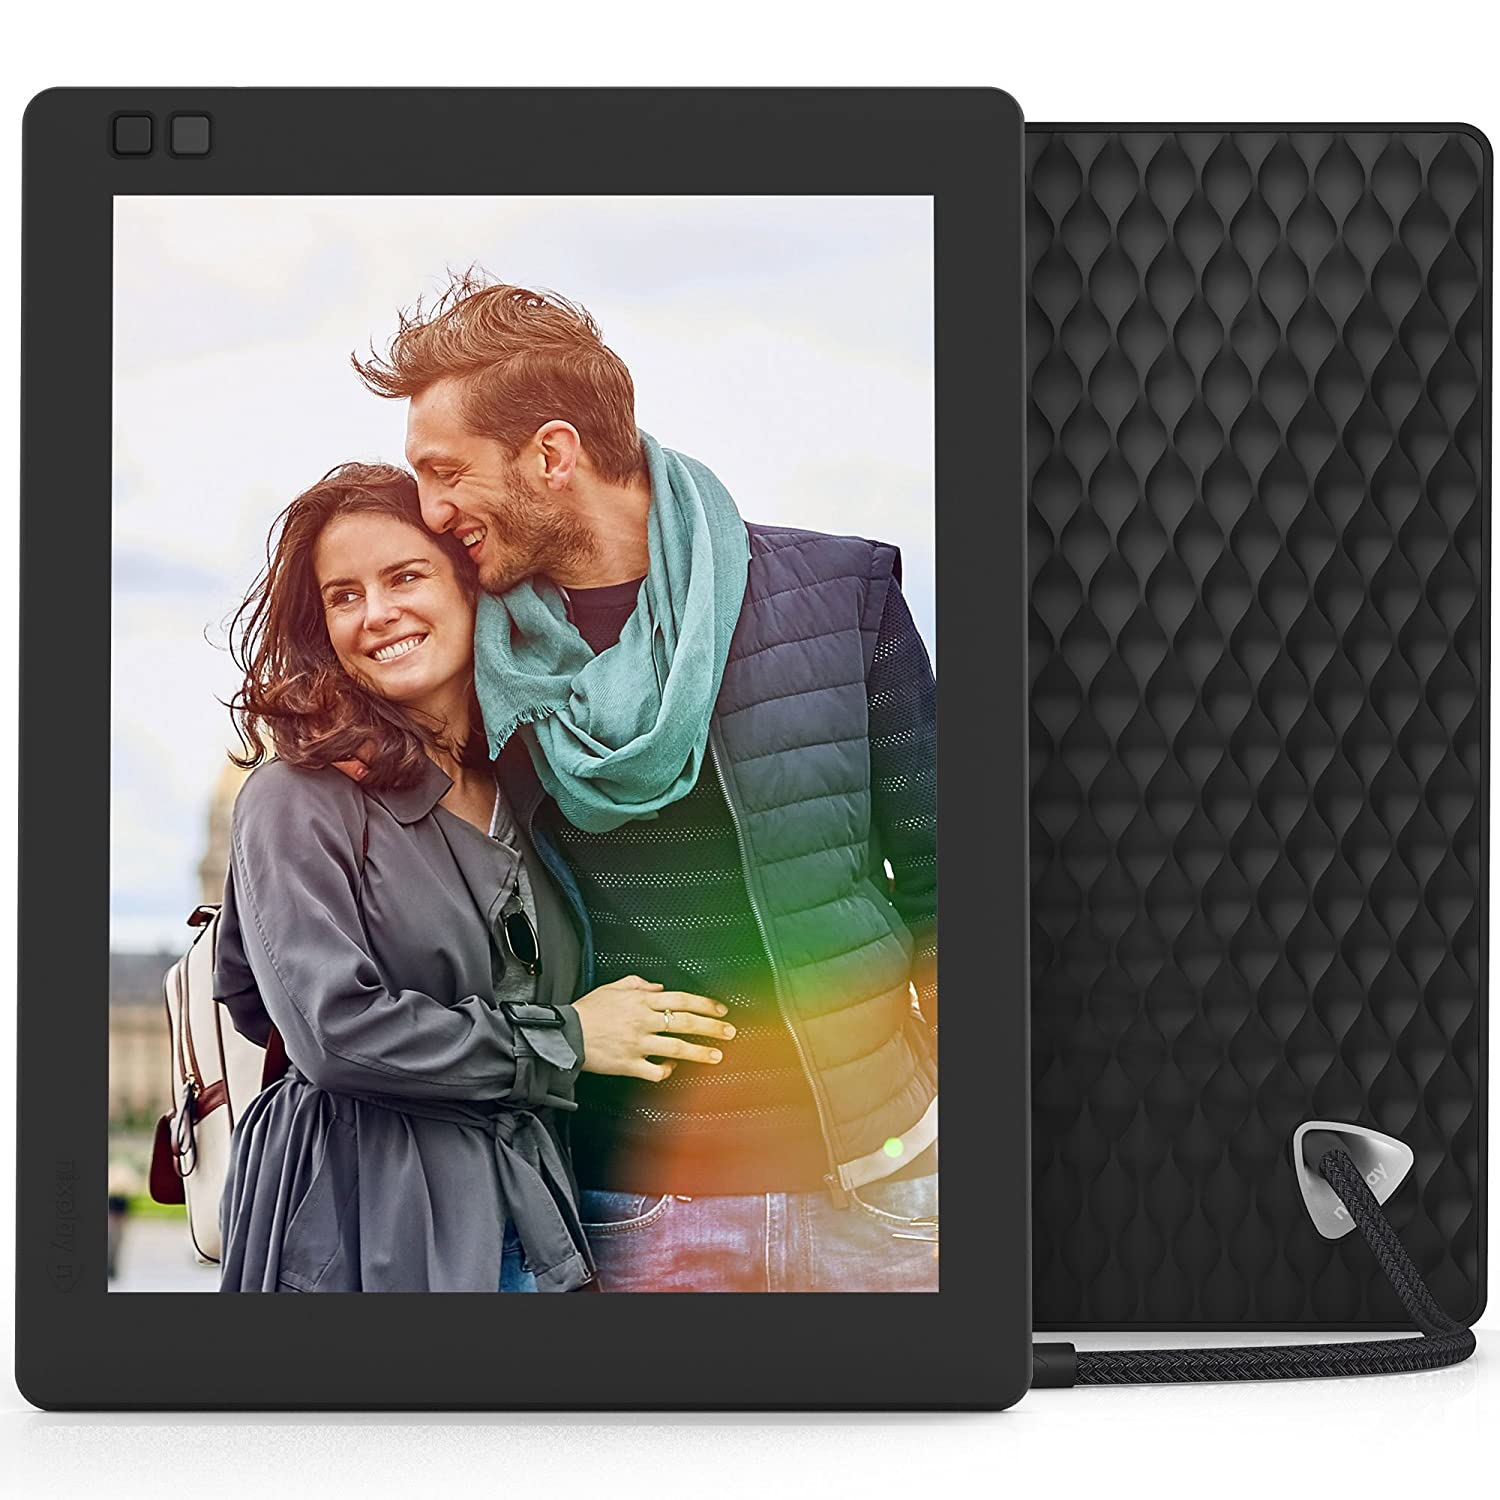 Best digital photo frame in april 2018 2019 buyers guide nixplay seed 10 inch wifi cloud digital photo frame jeuxipadfo Images